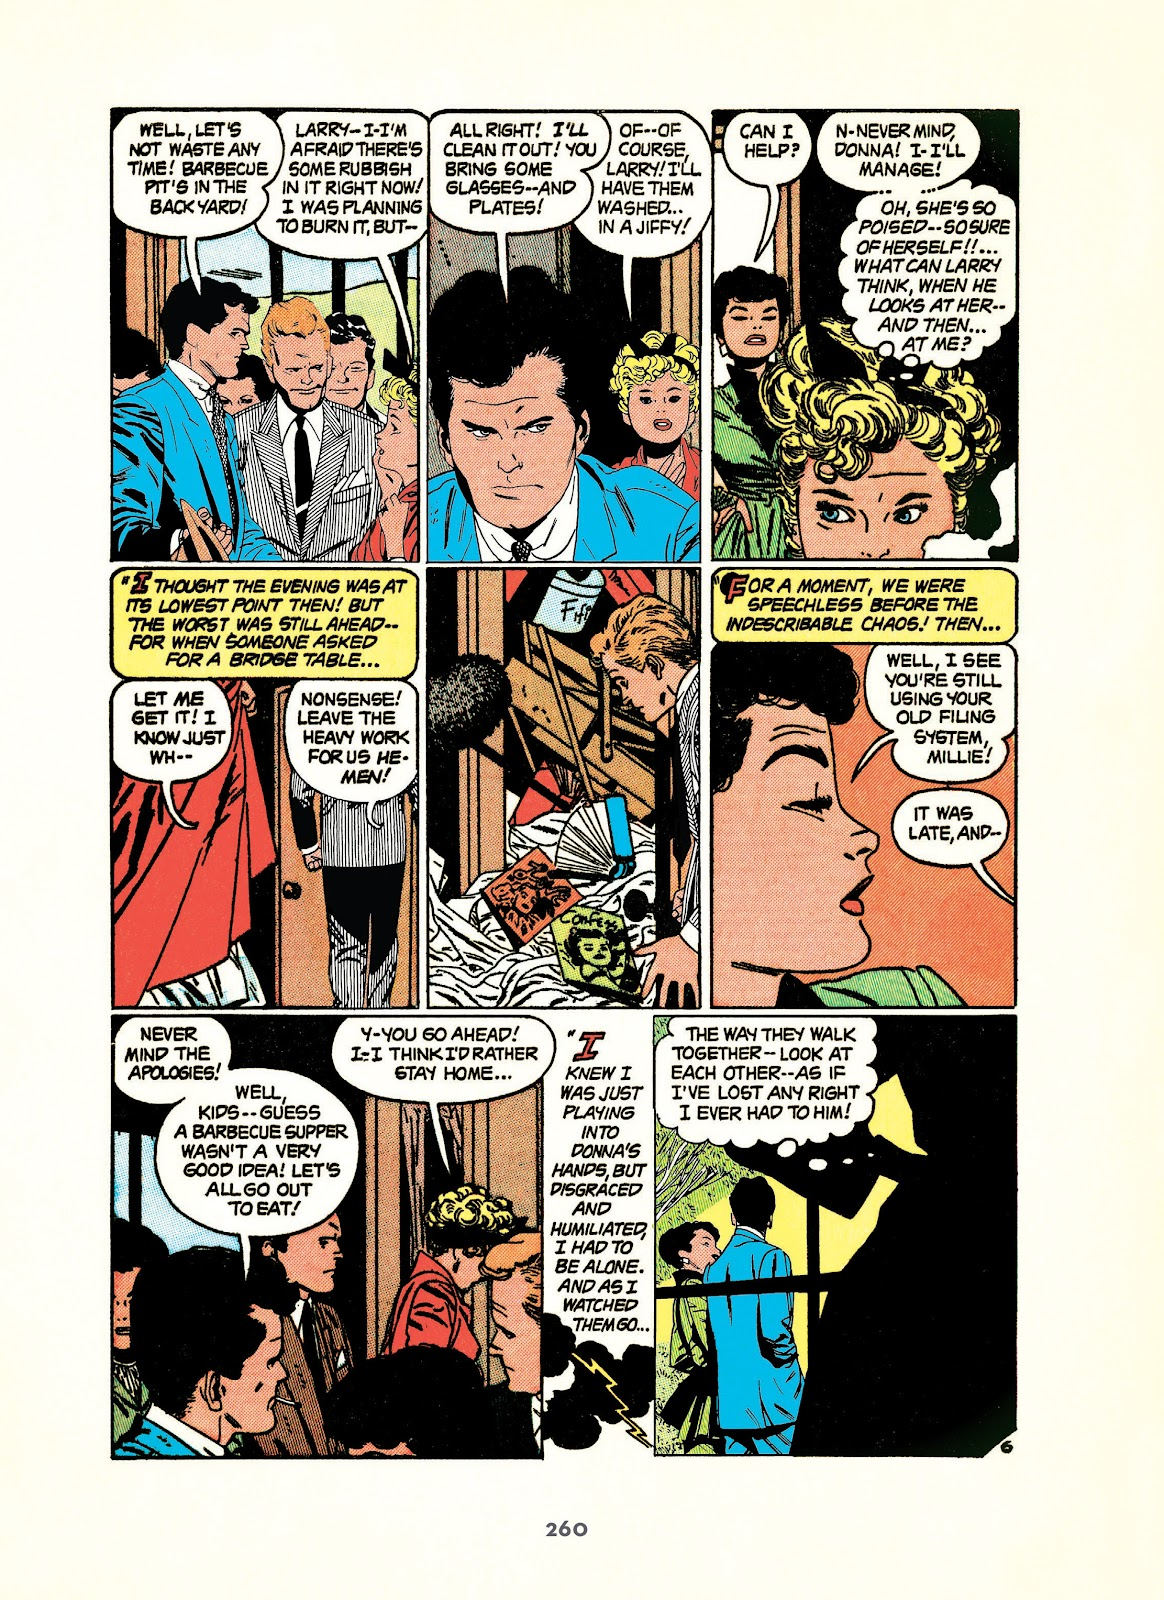 Read online Setting the Standard: Comics by Alex Toth 1952-1954 comic -  Issue # TPB (Part 3) - 61